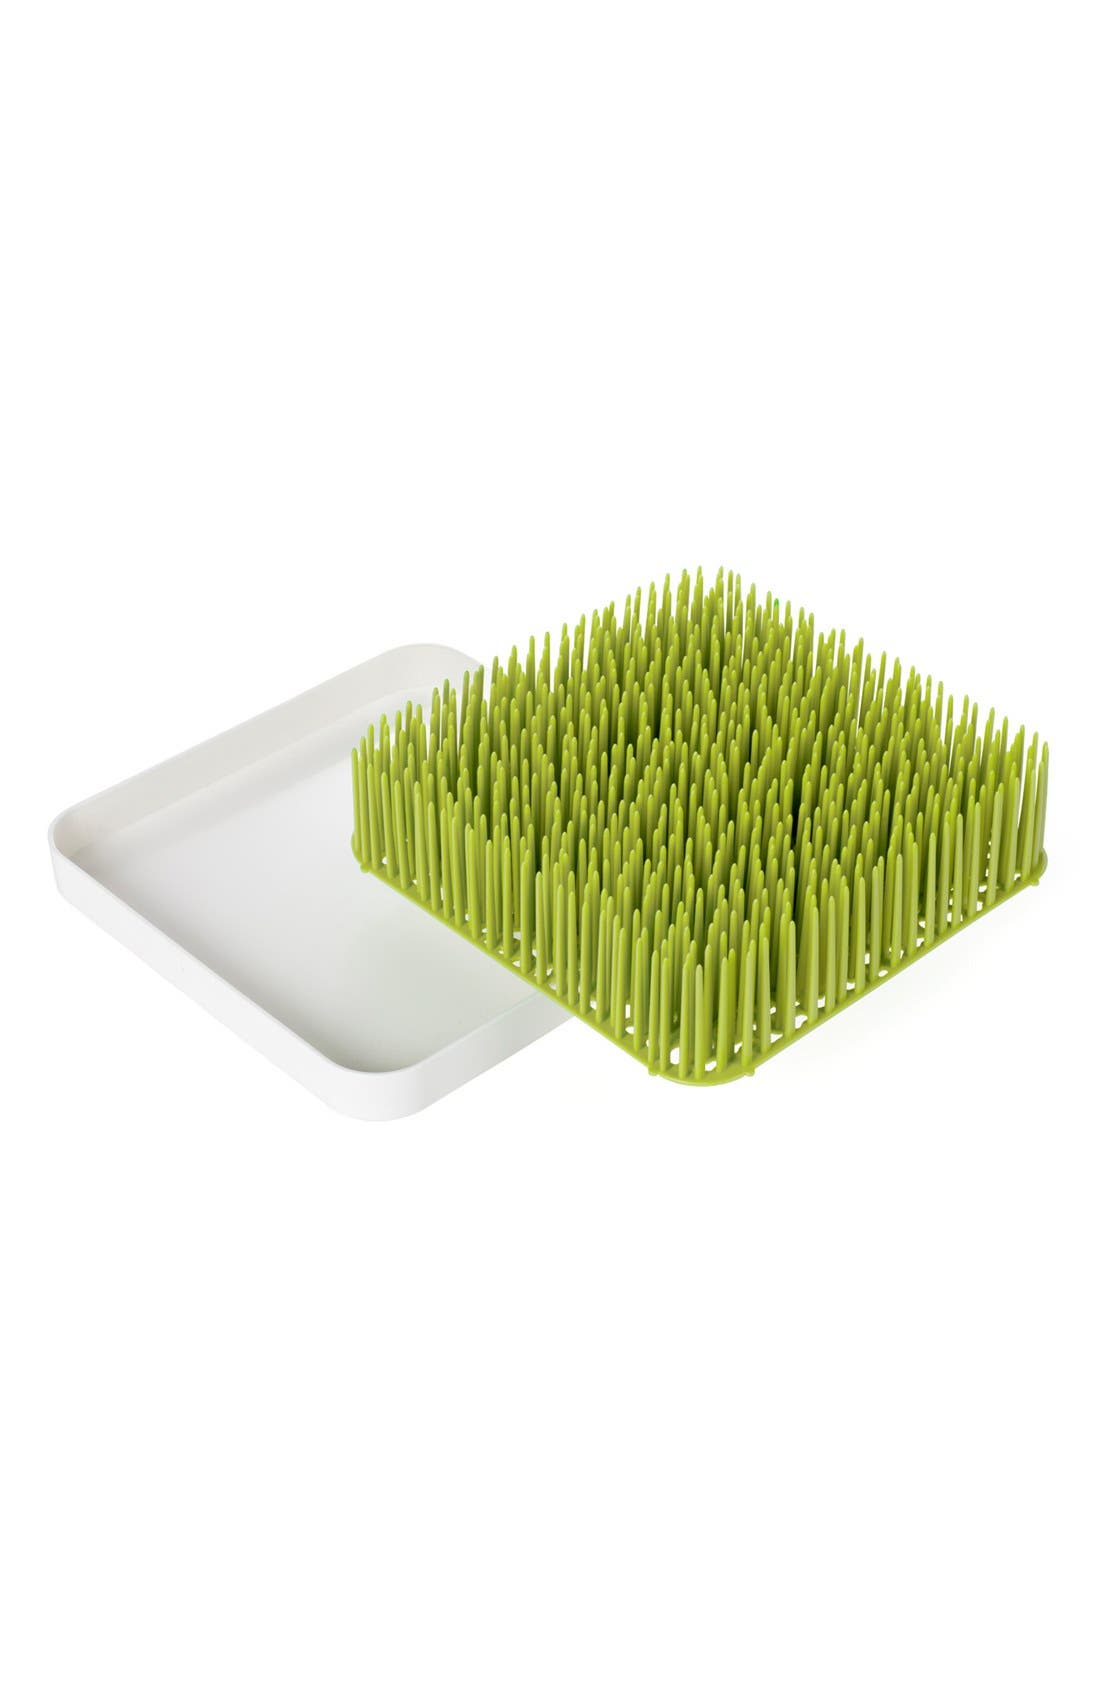 Main Image - Boon 'Grass' Drying Rack